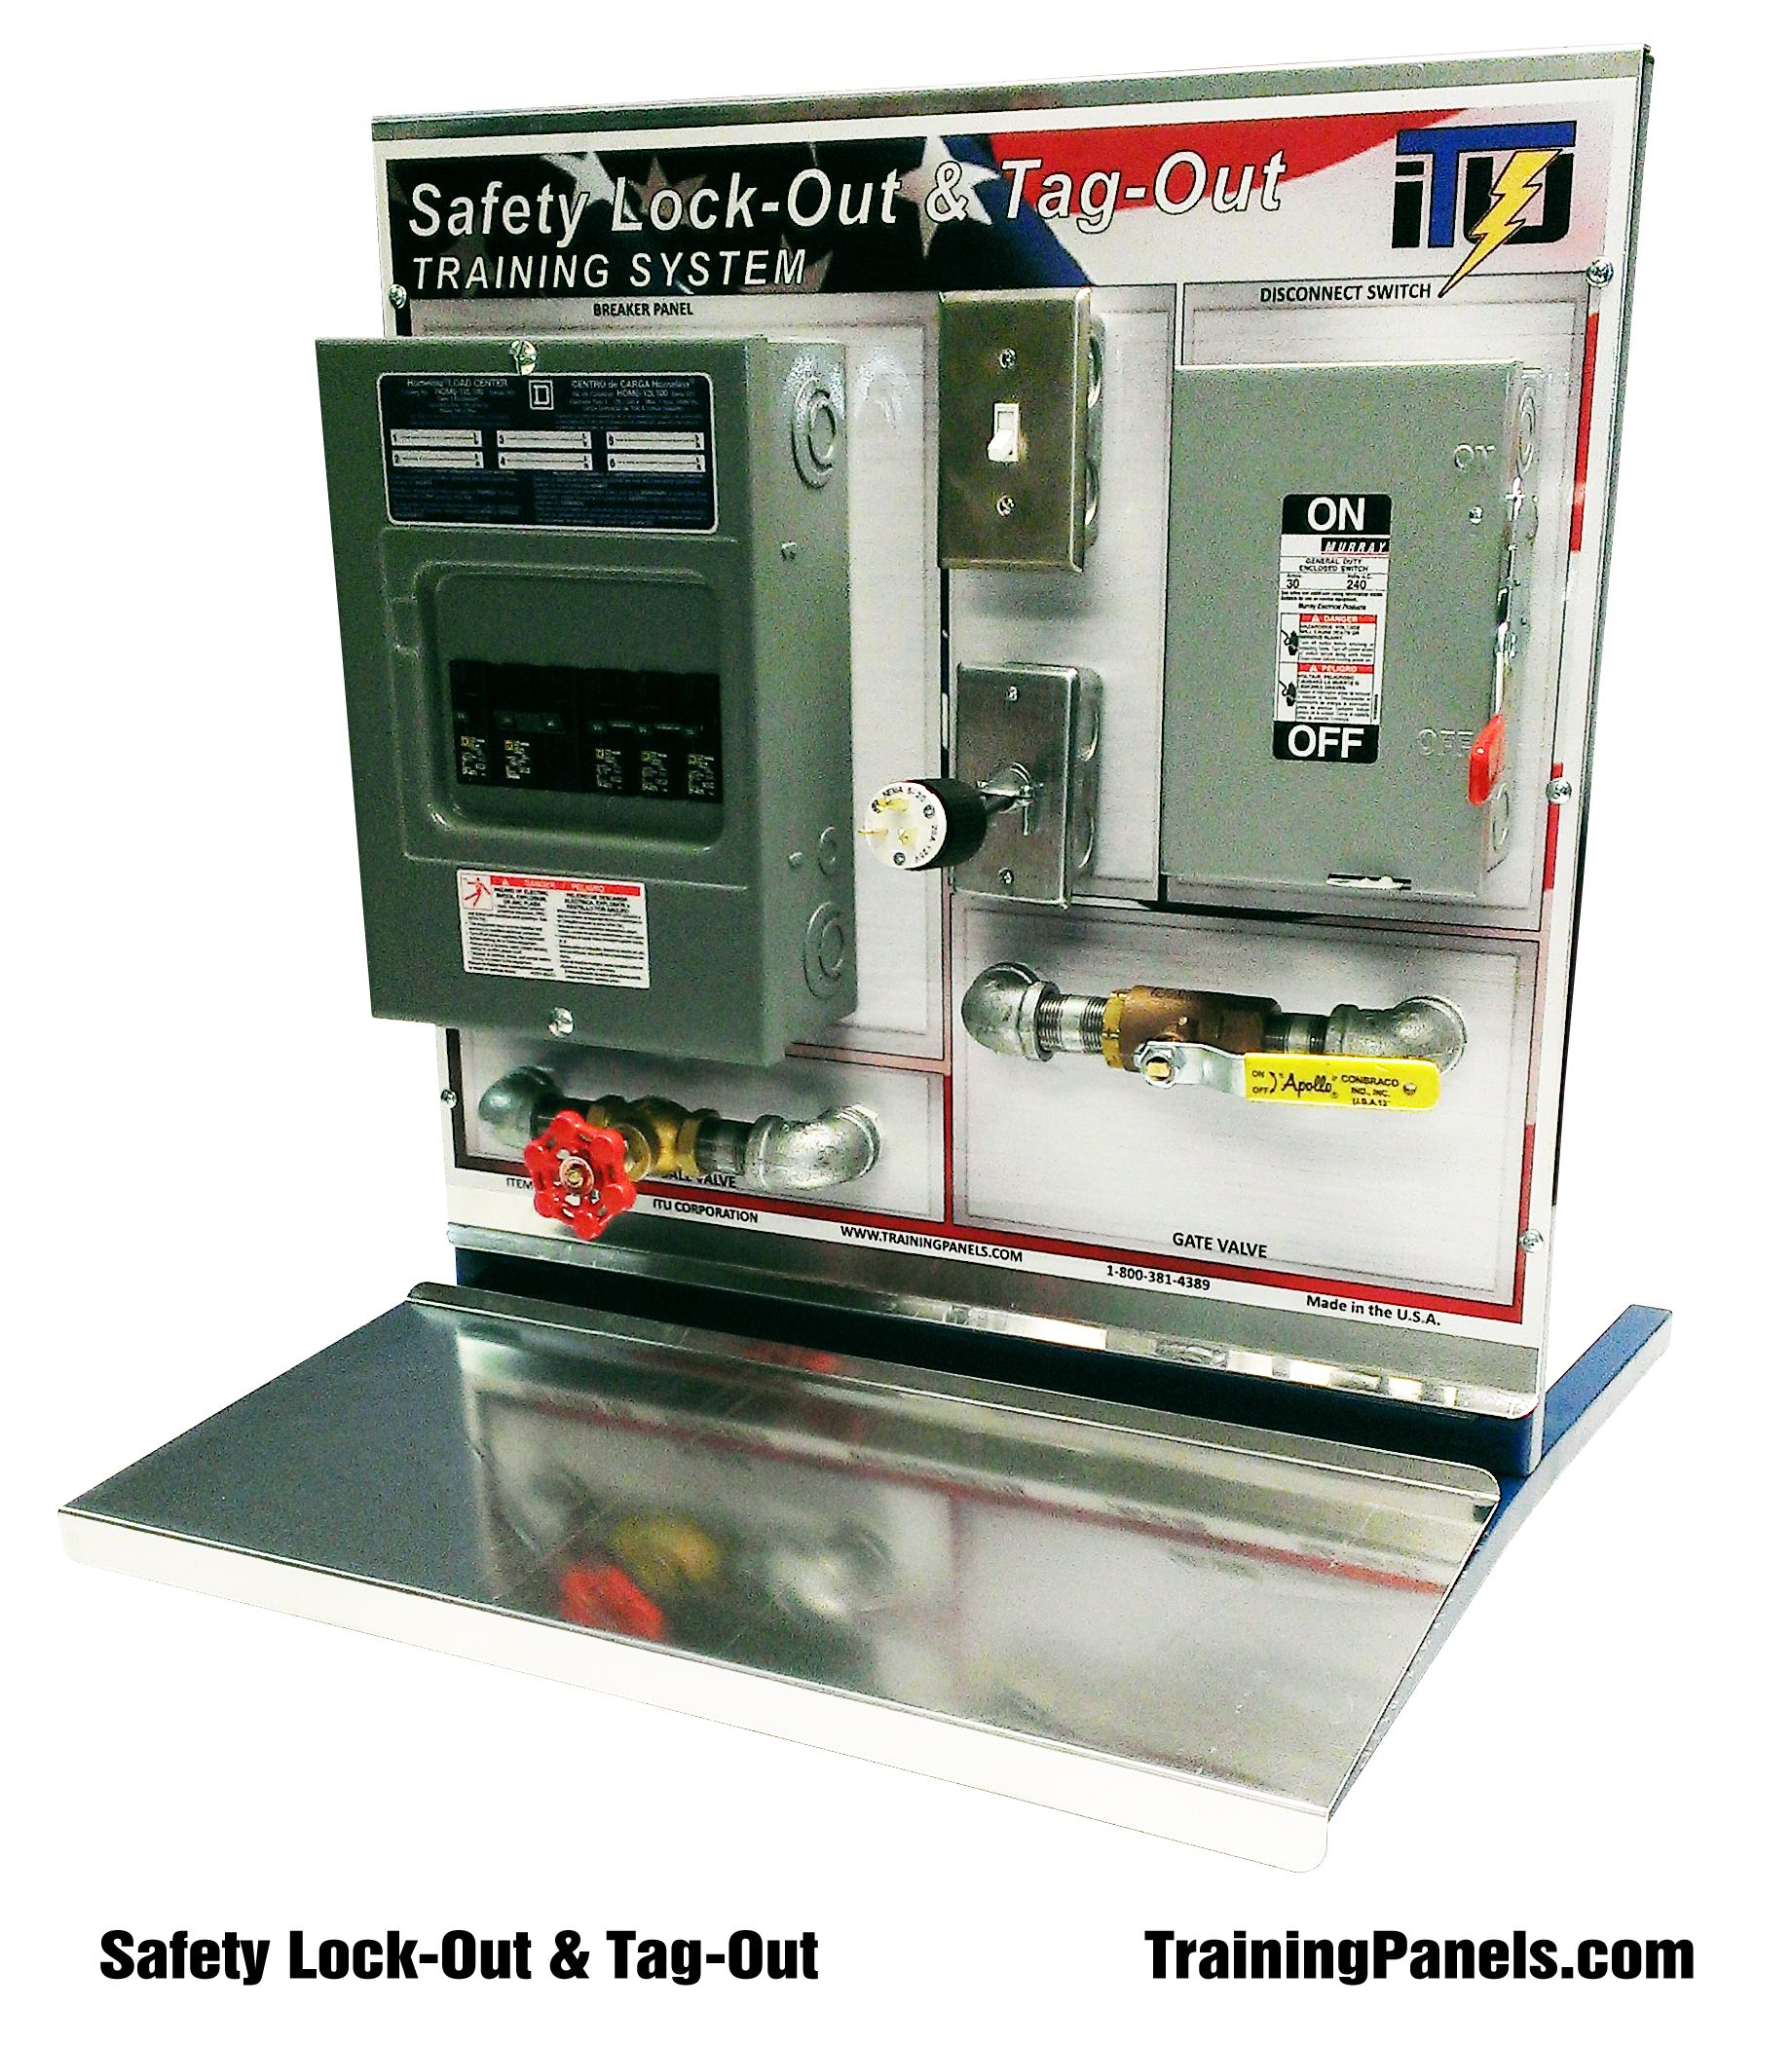 LockOut TagOut Training System. This training system is